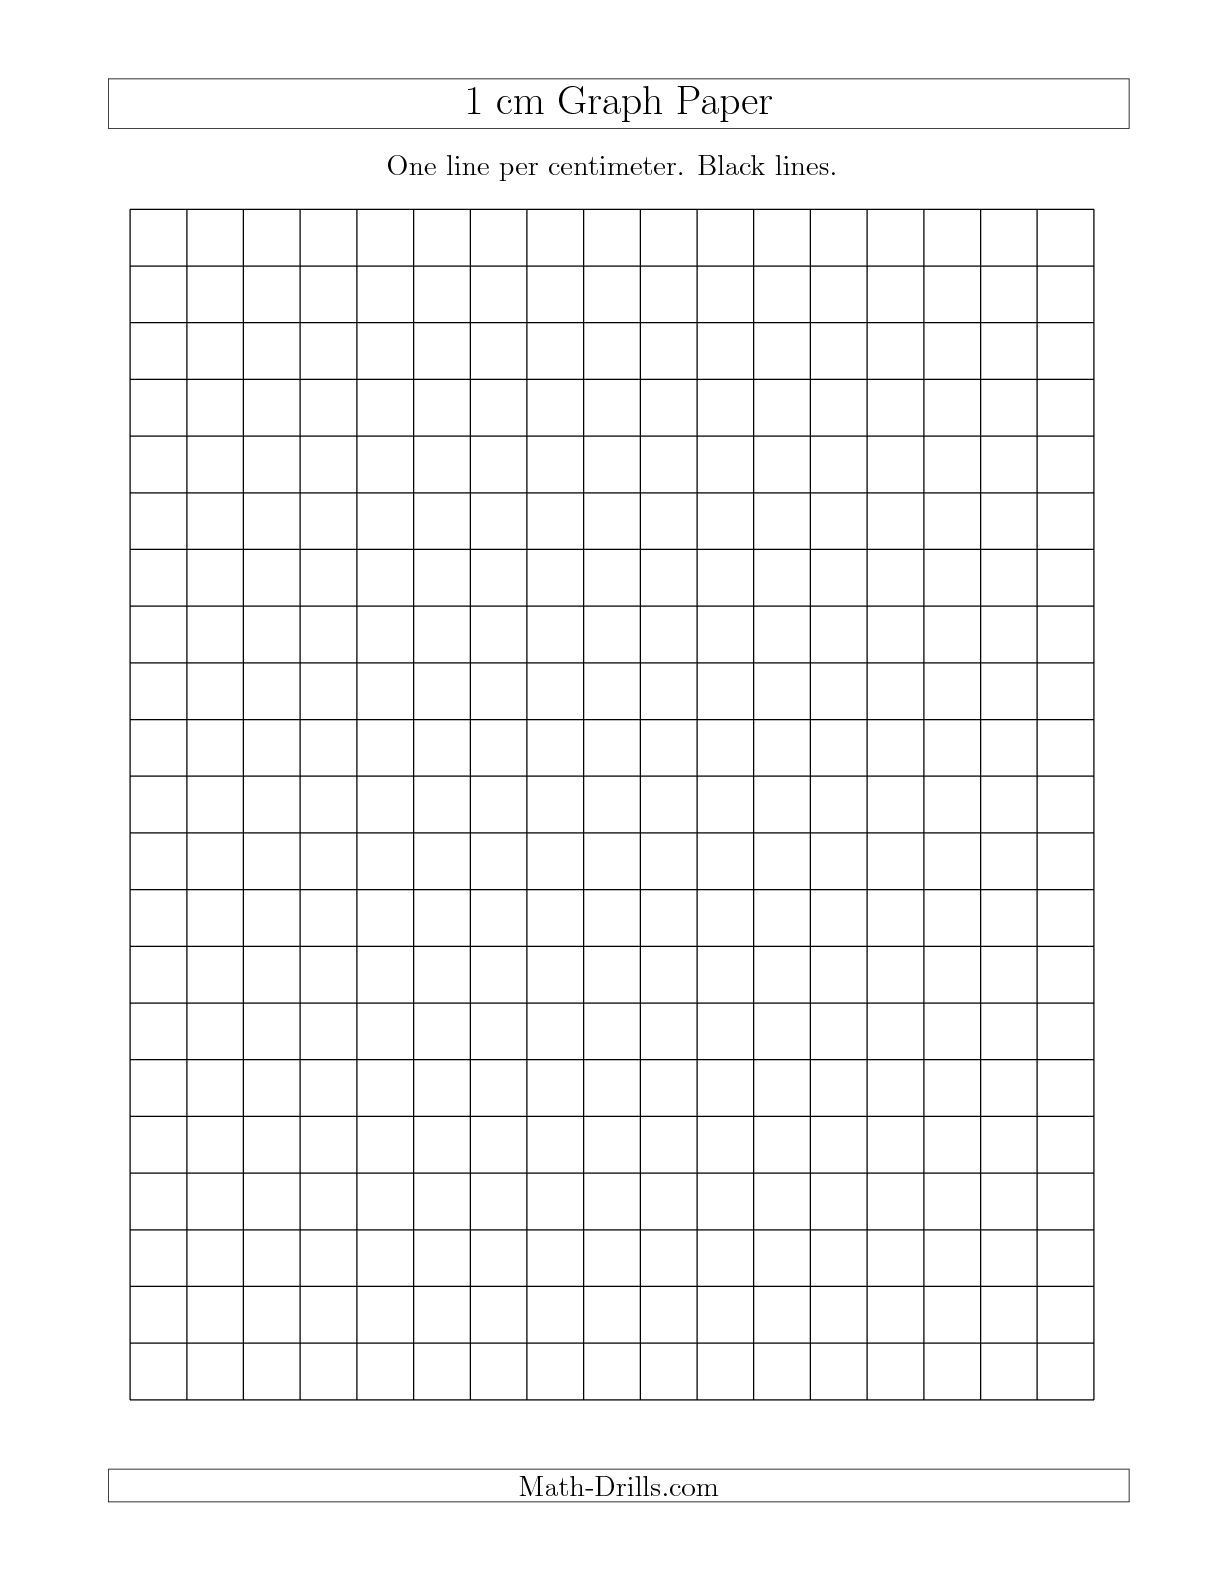 Math Drills Graph Paper the 1 Cm Graph Paper with Black Lines A Math Worksheet